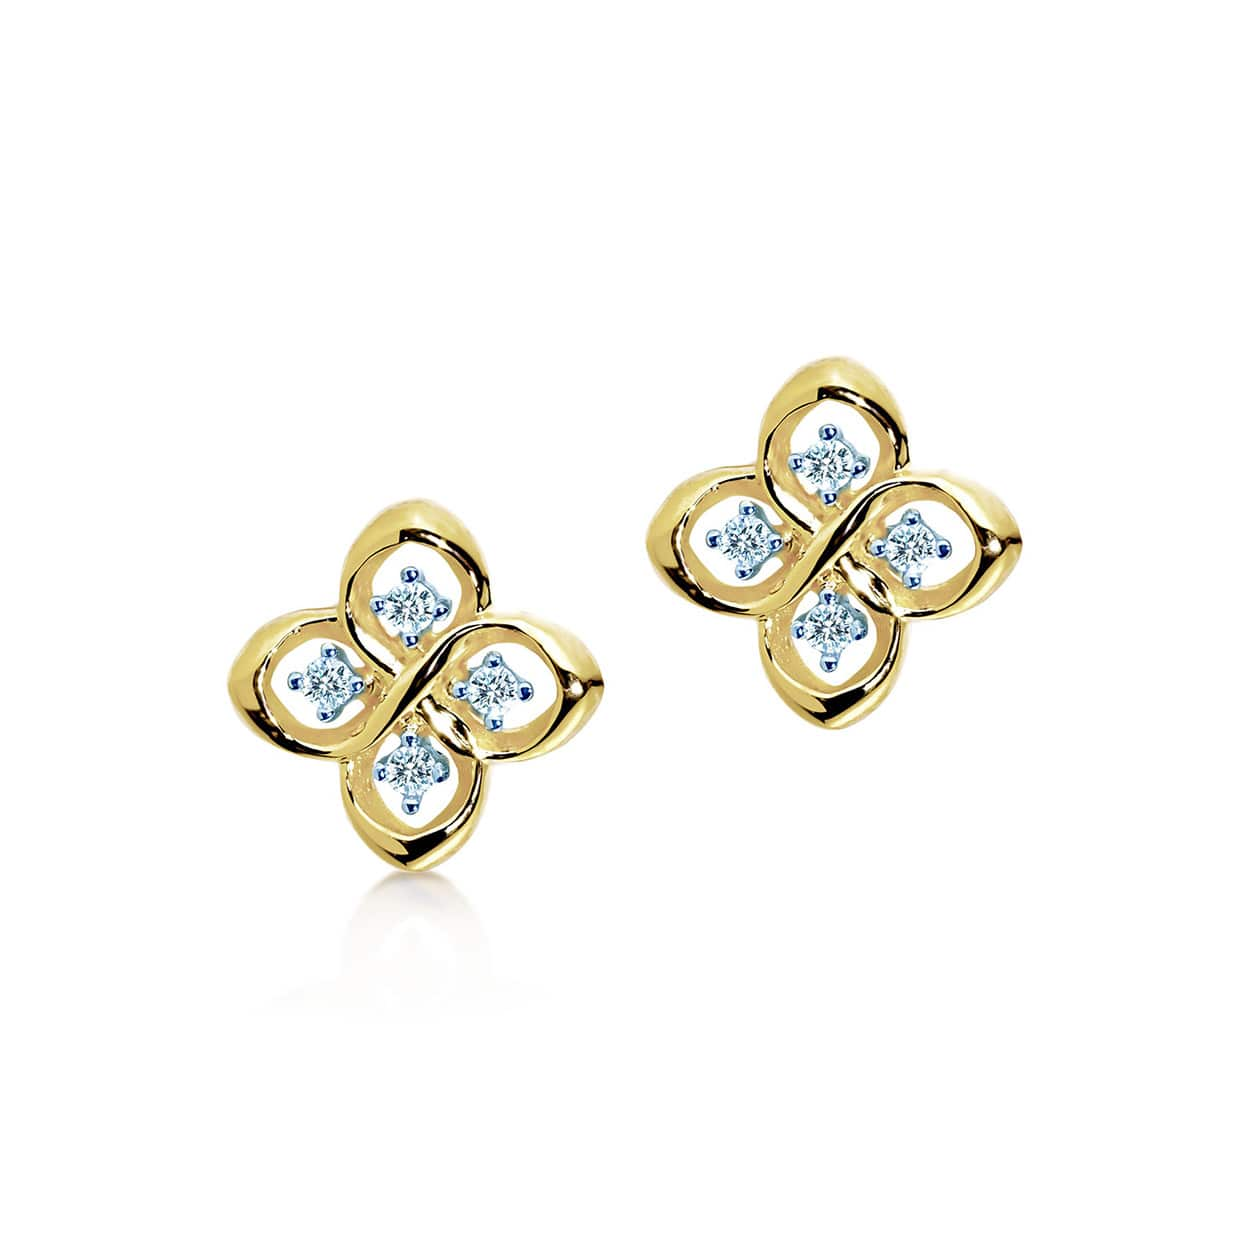 Oxford Gold Petite Earrings - Abelstedt